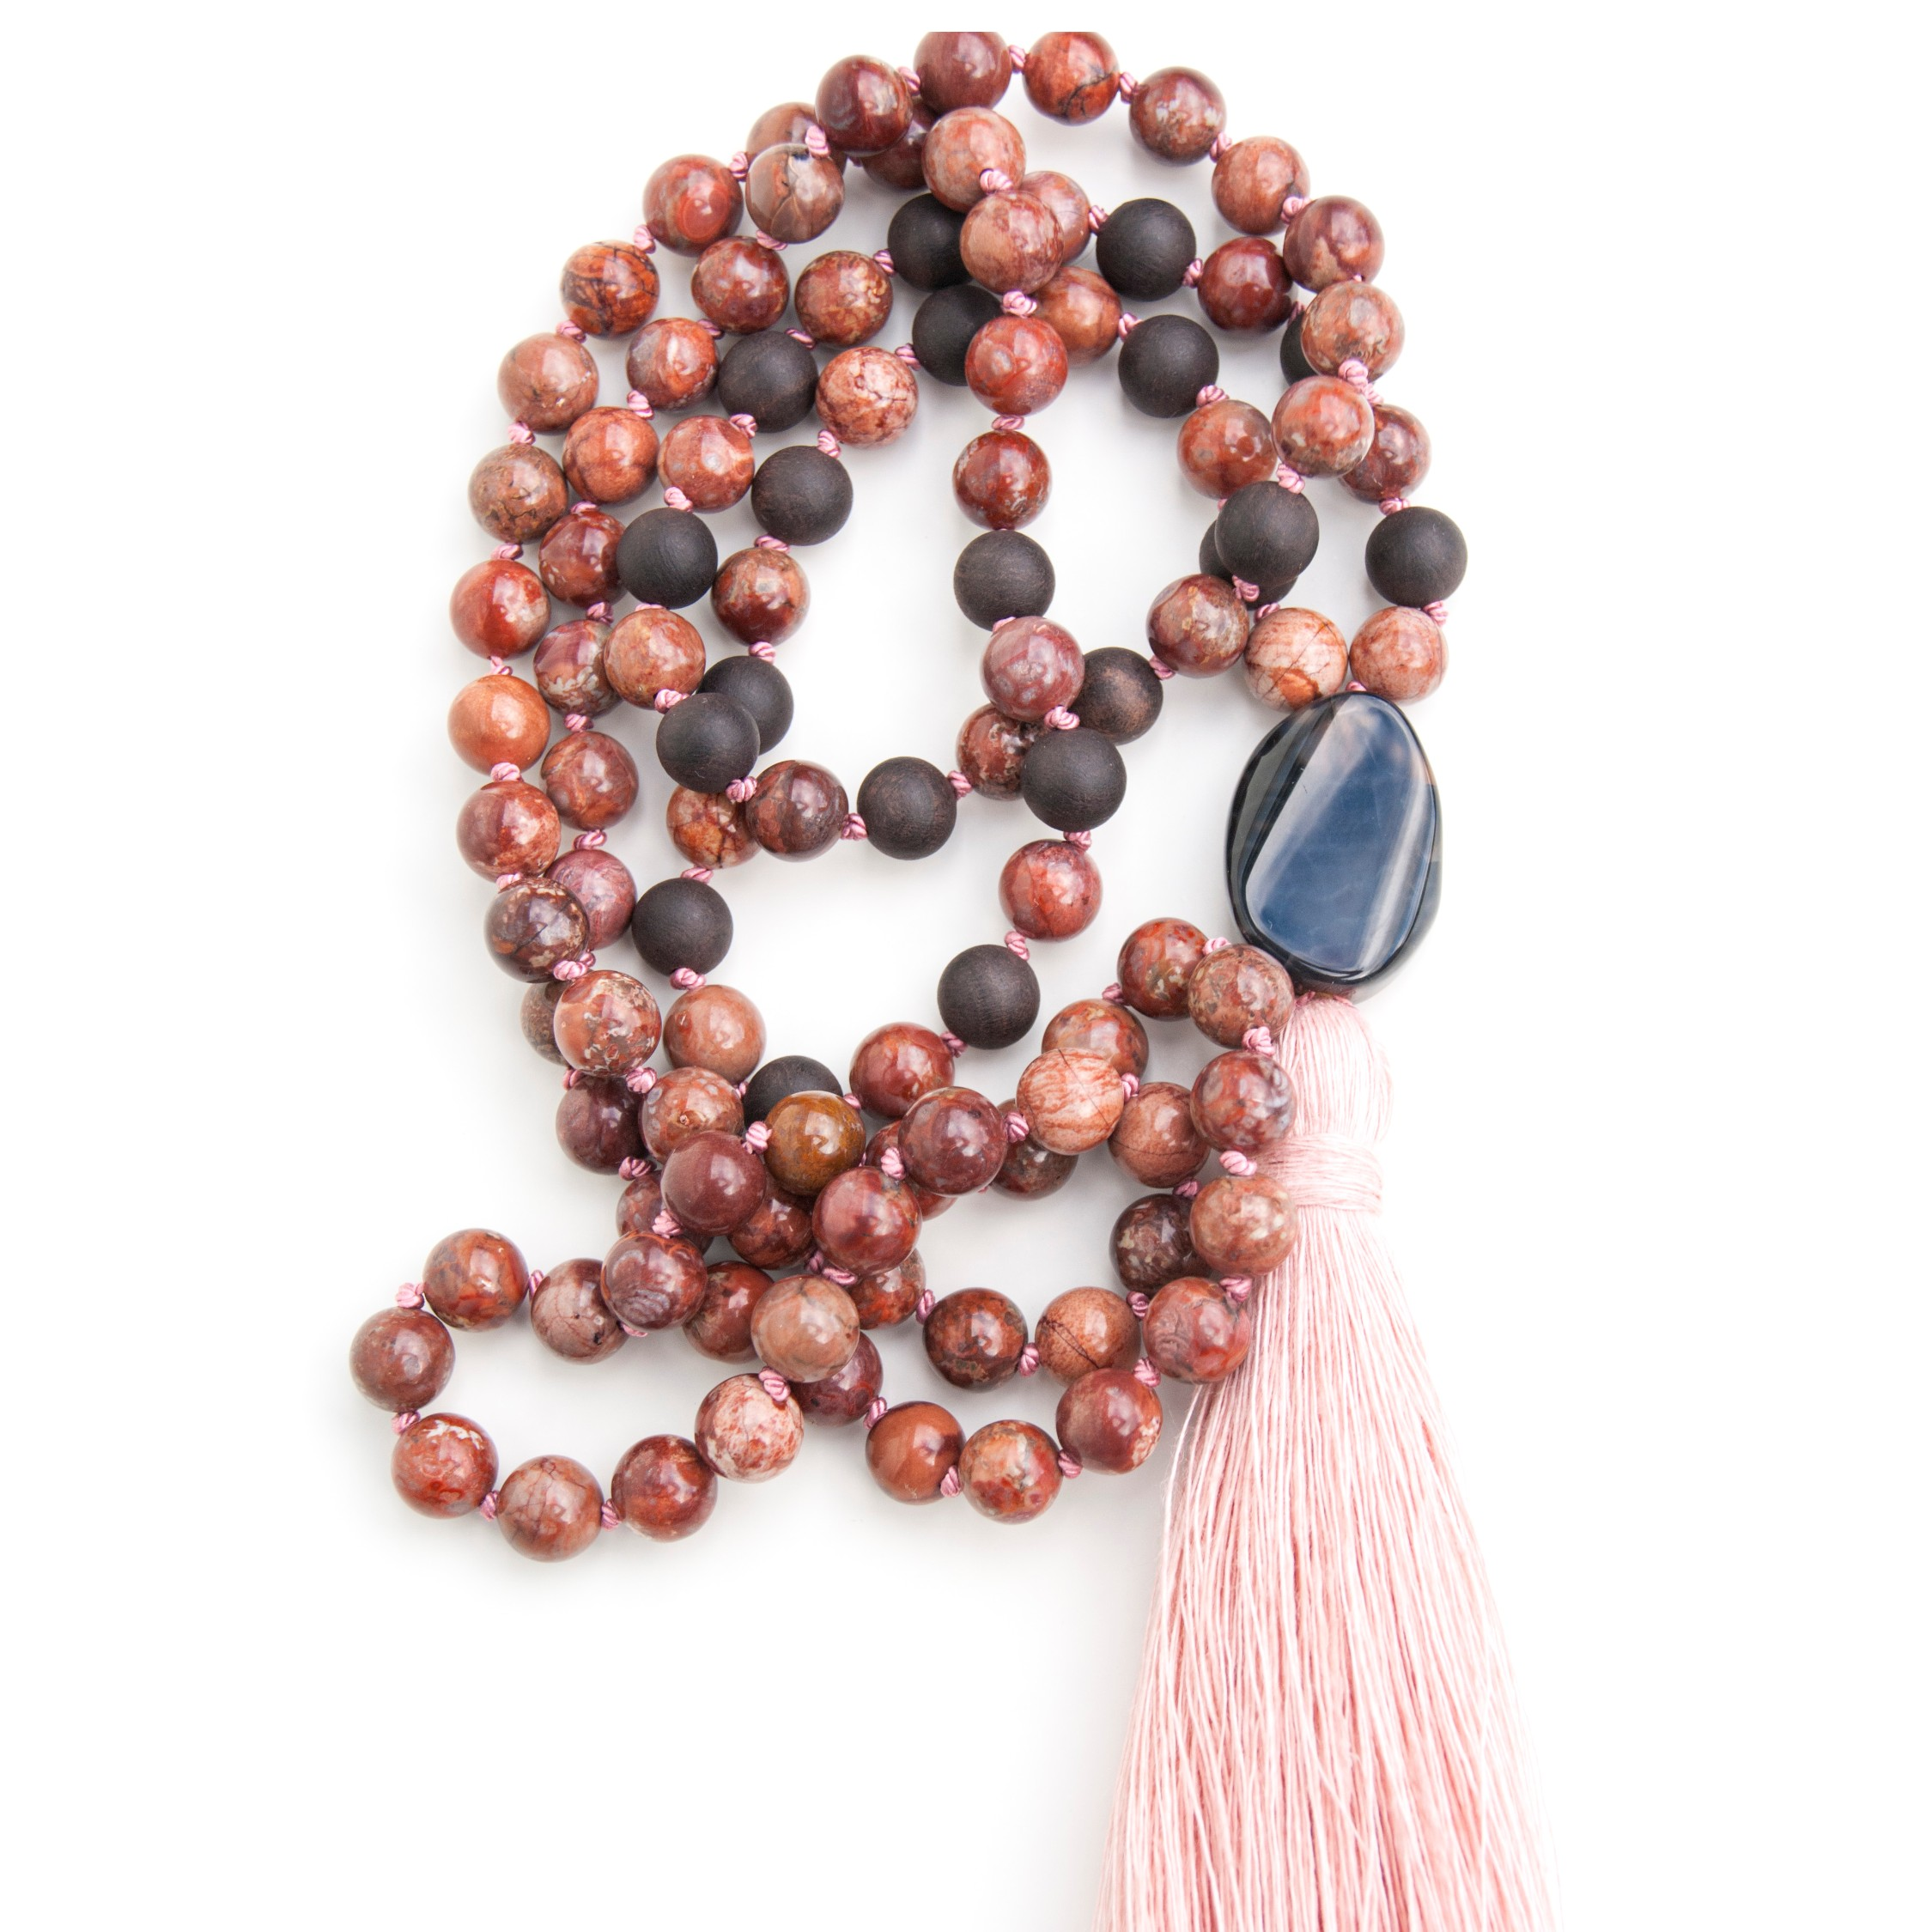 Leaving worries behind with this Brown Jasper mala